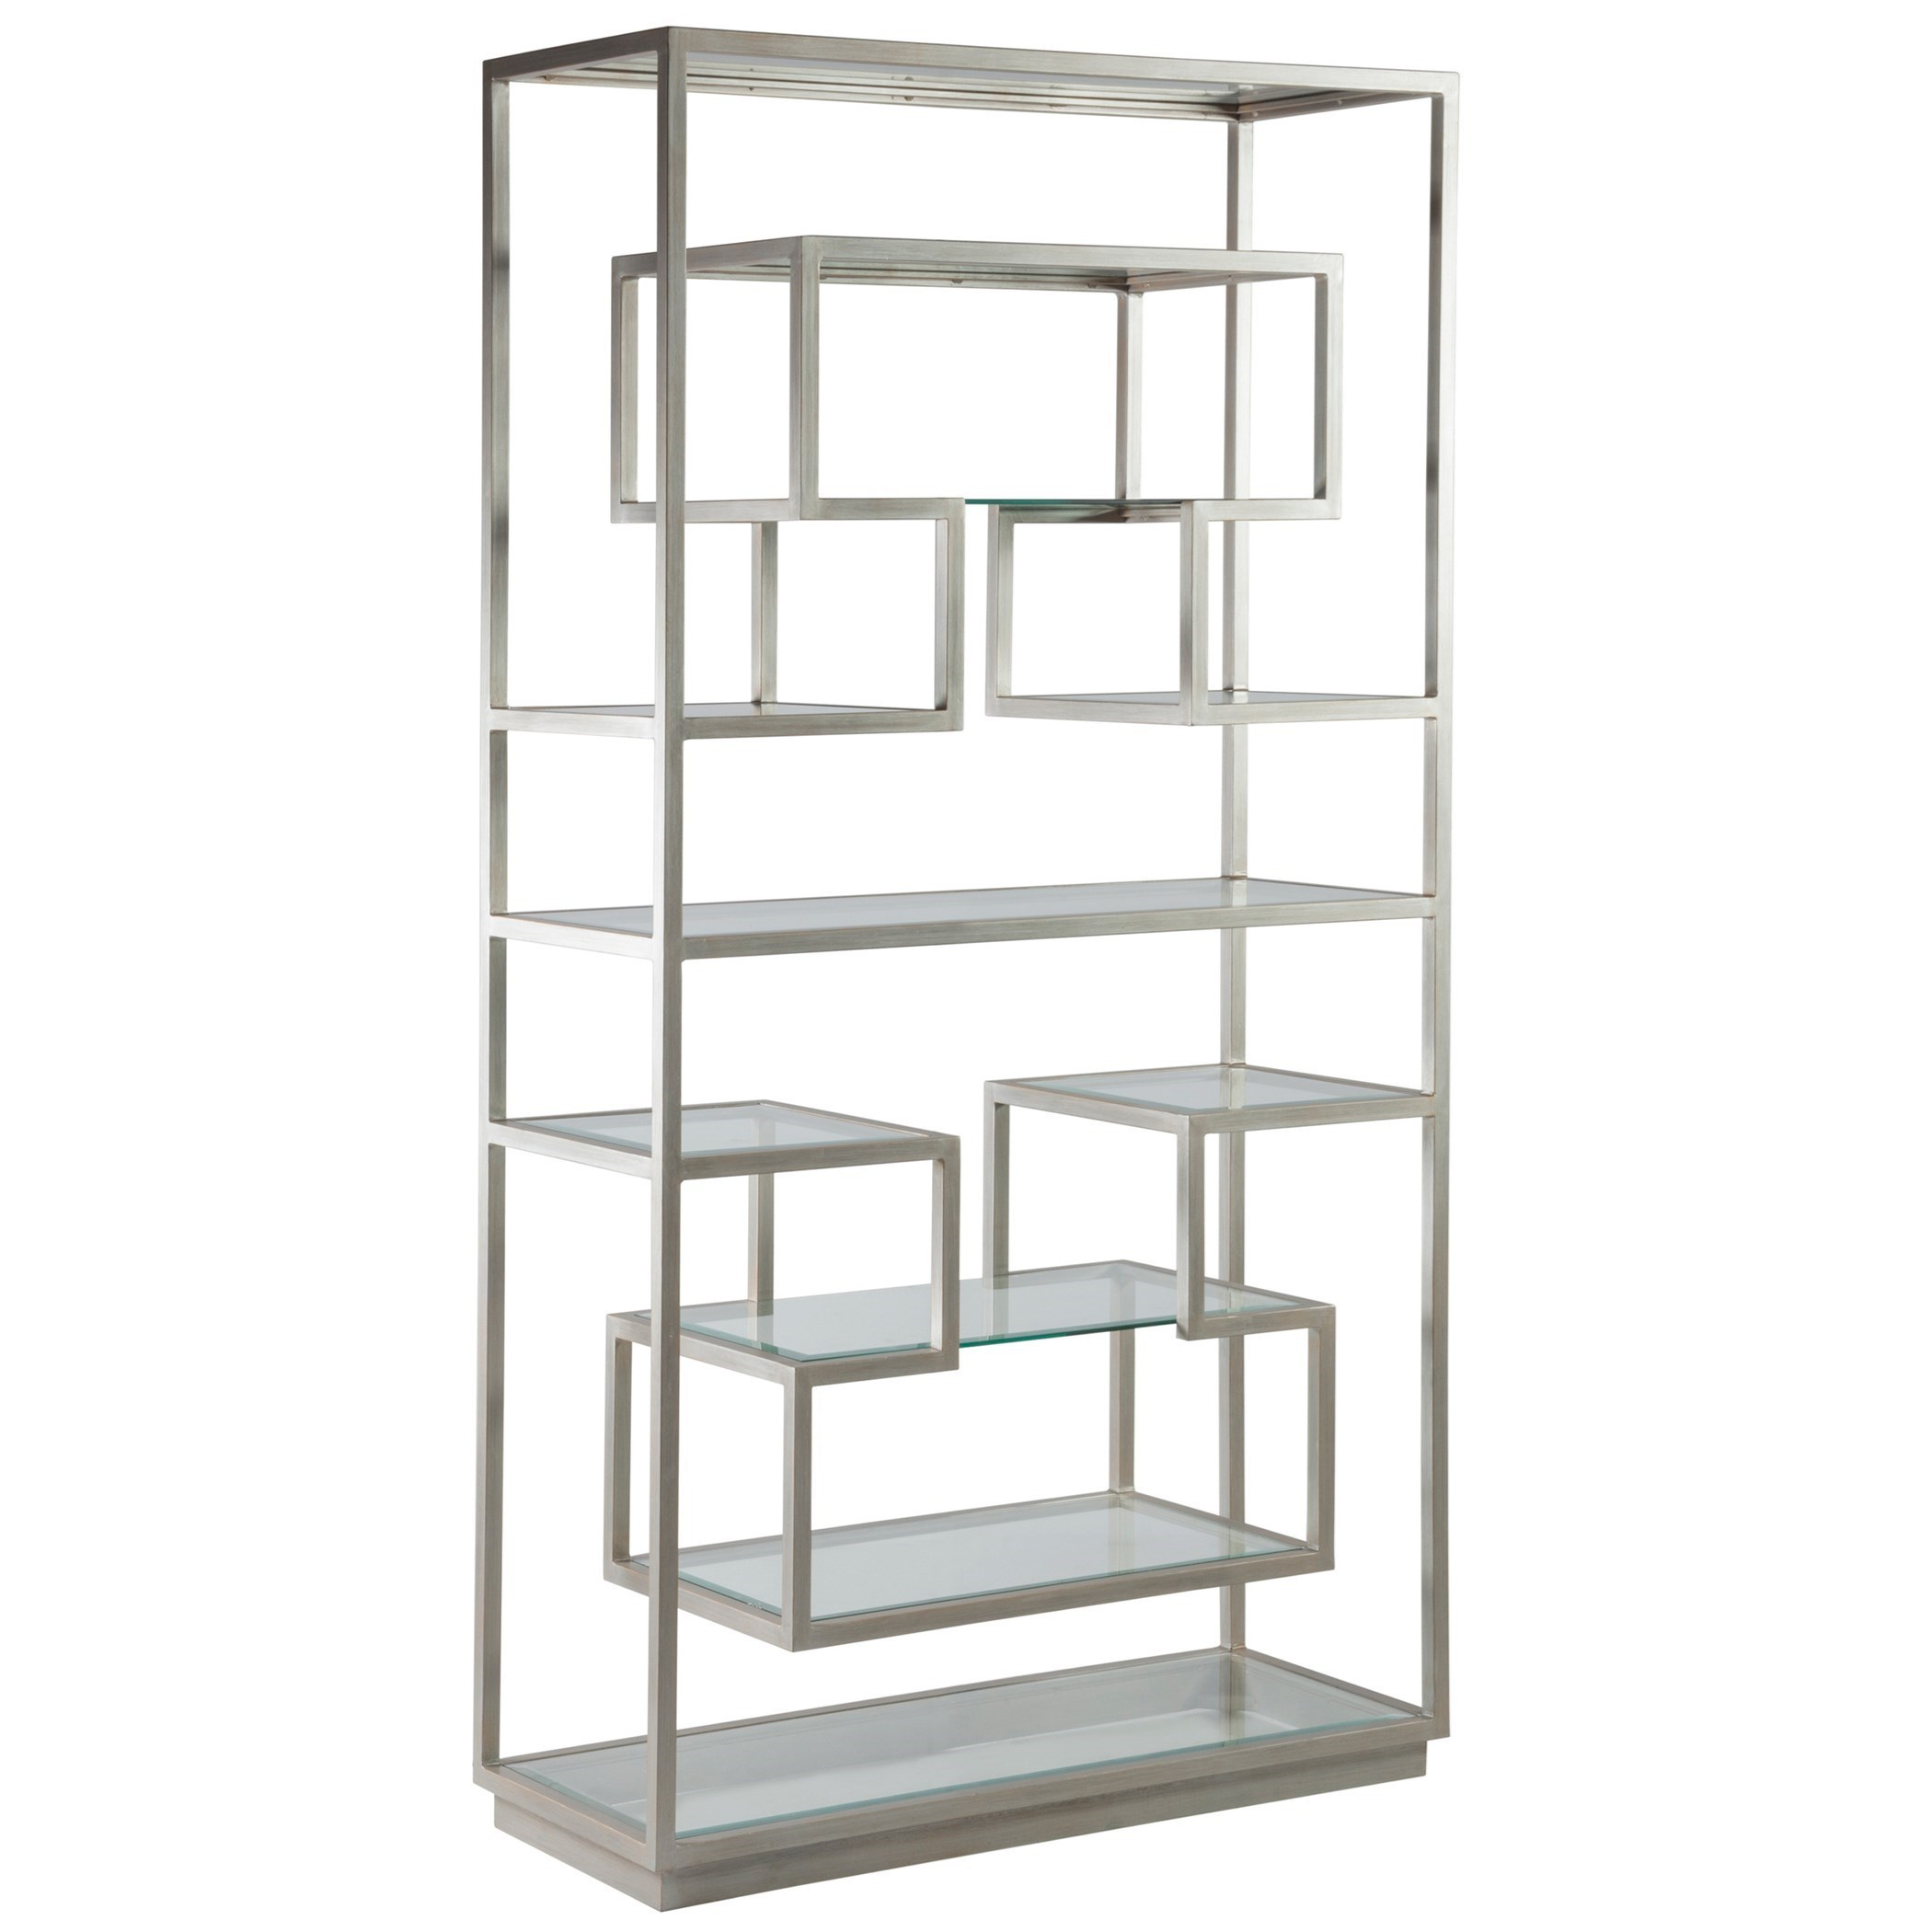 Metal Designs Holden Etagere by Artistica at Alison Craig Home Furnishings